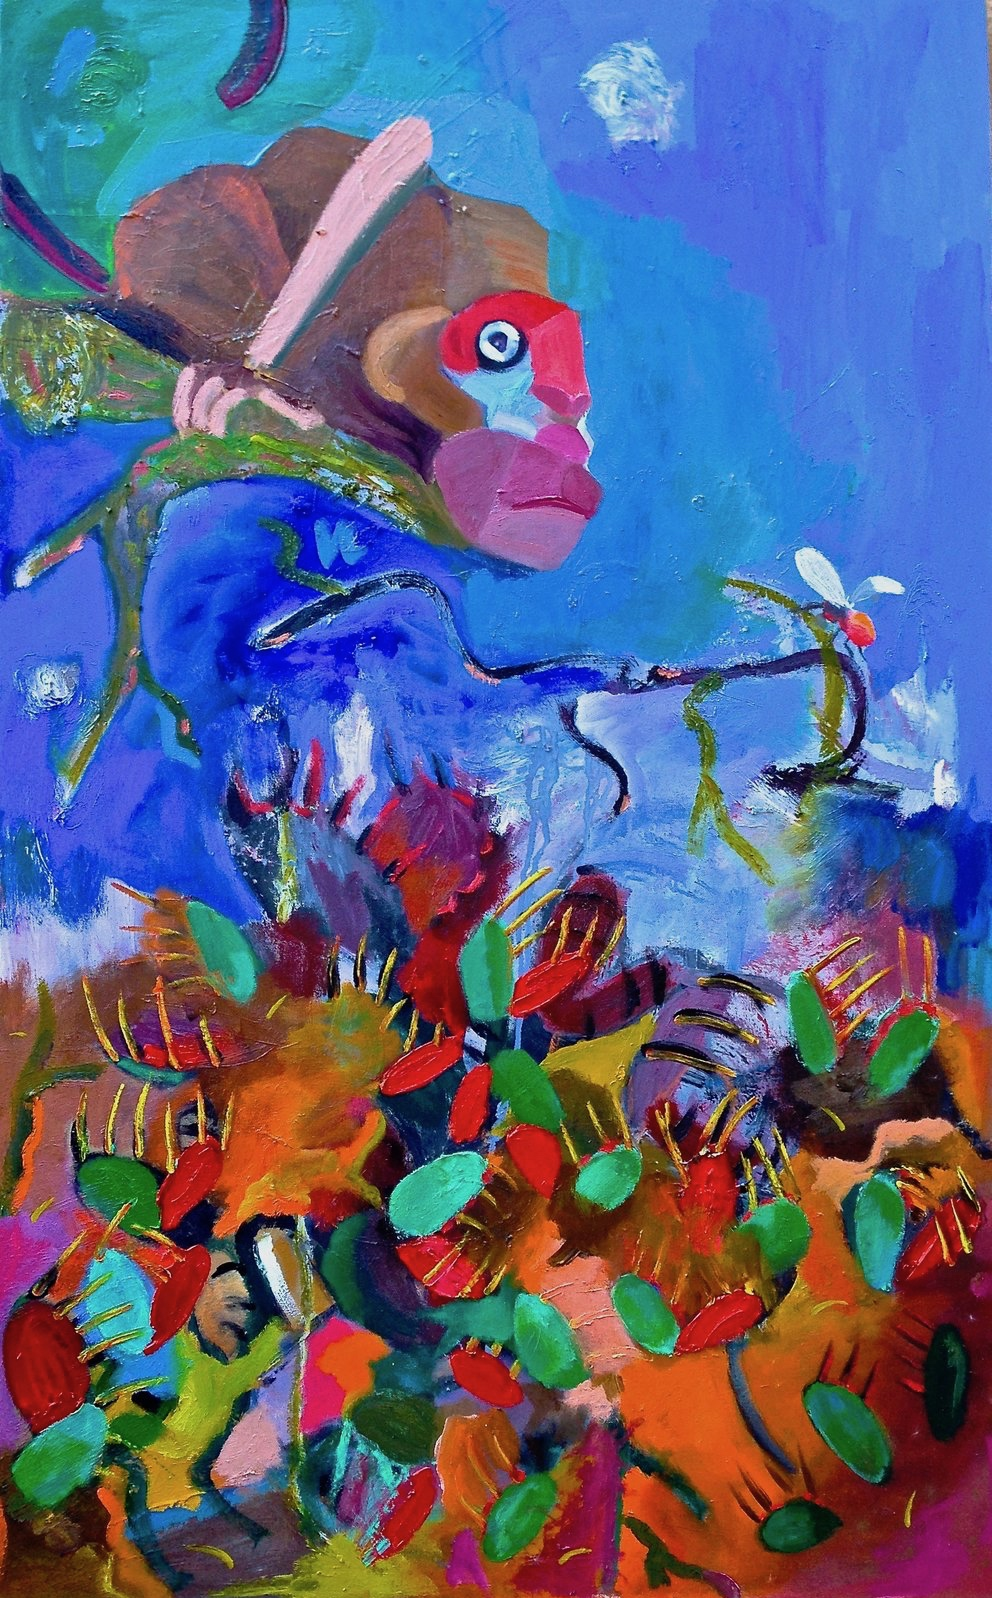 """""""Monkey and the venus flytraps"""" 48""""x30"""" oil on canvas, 2016"""